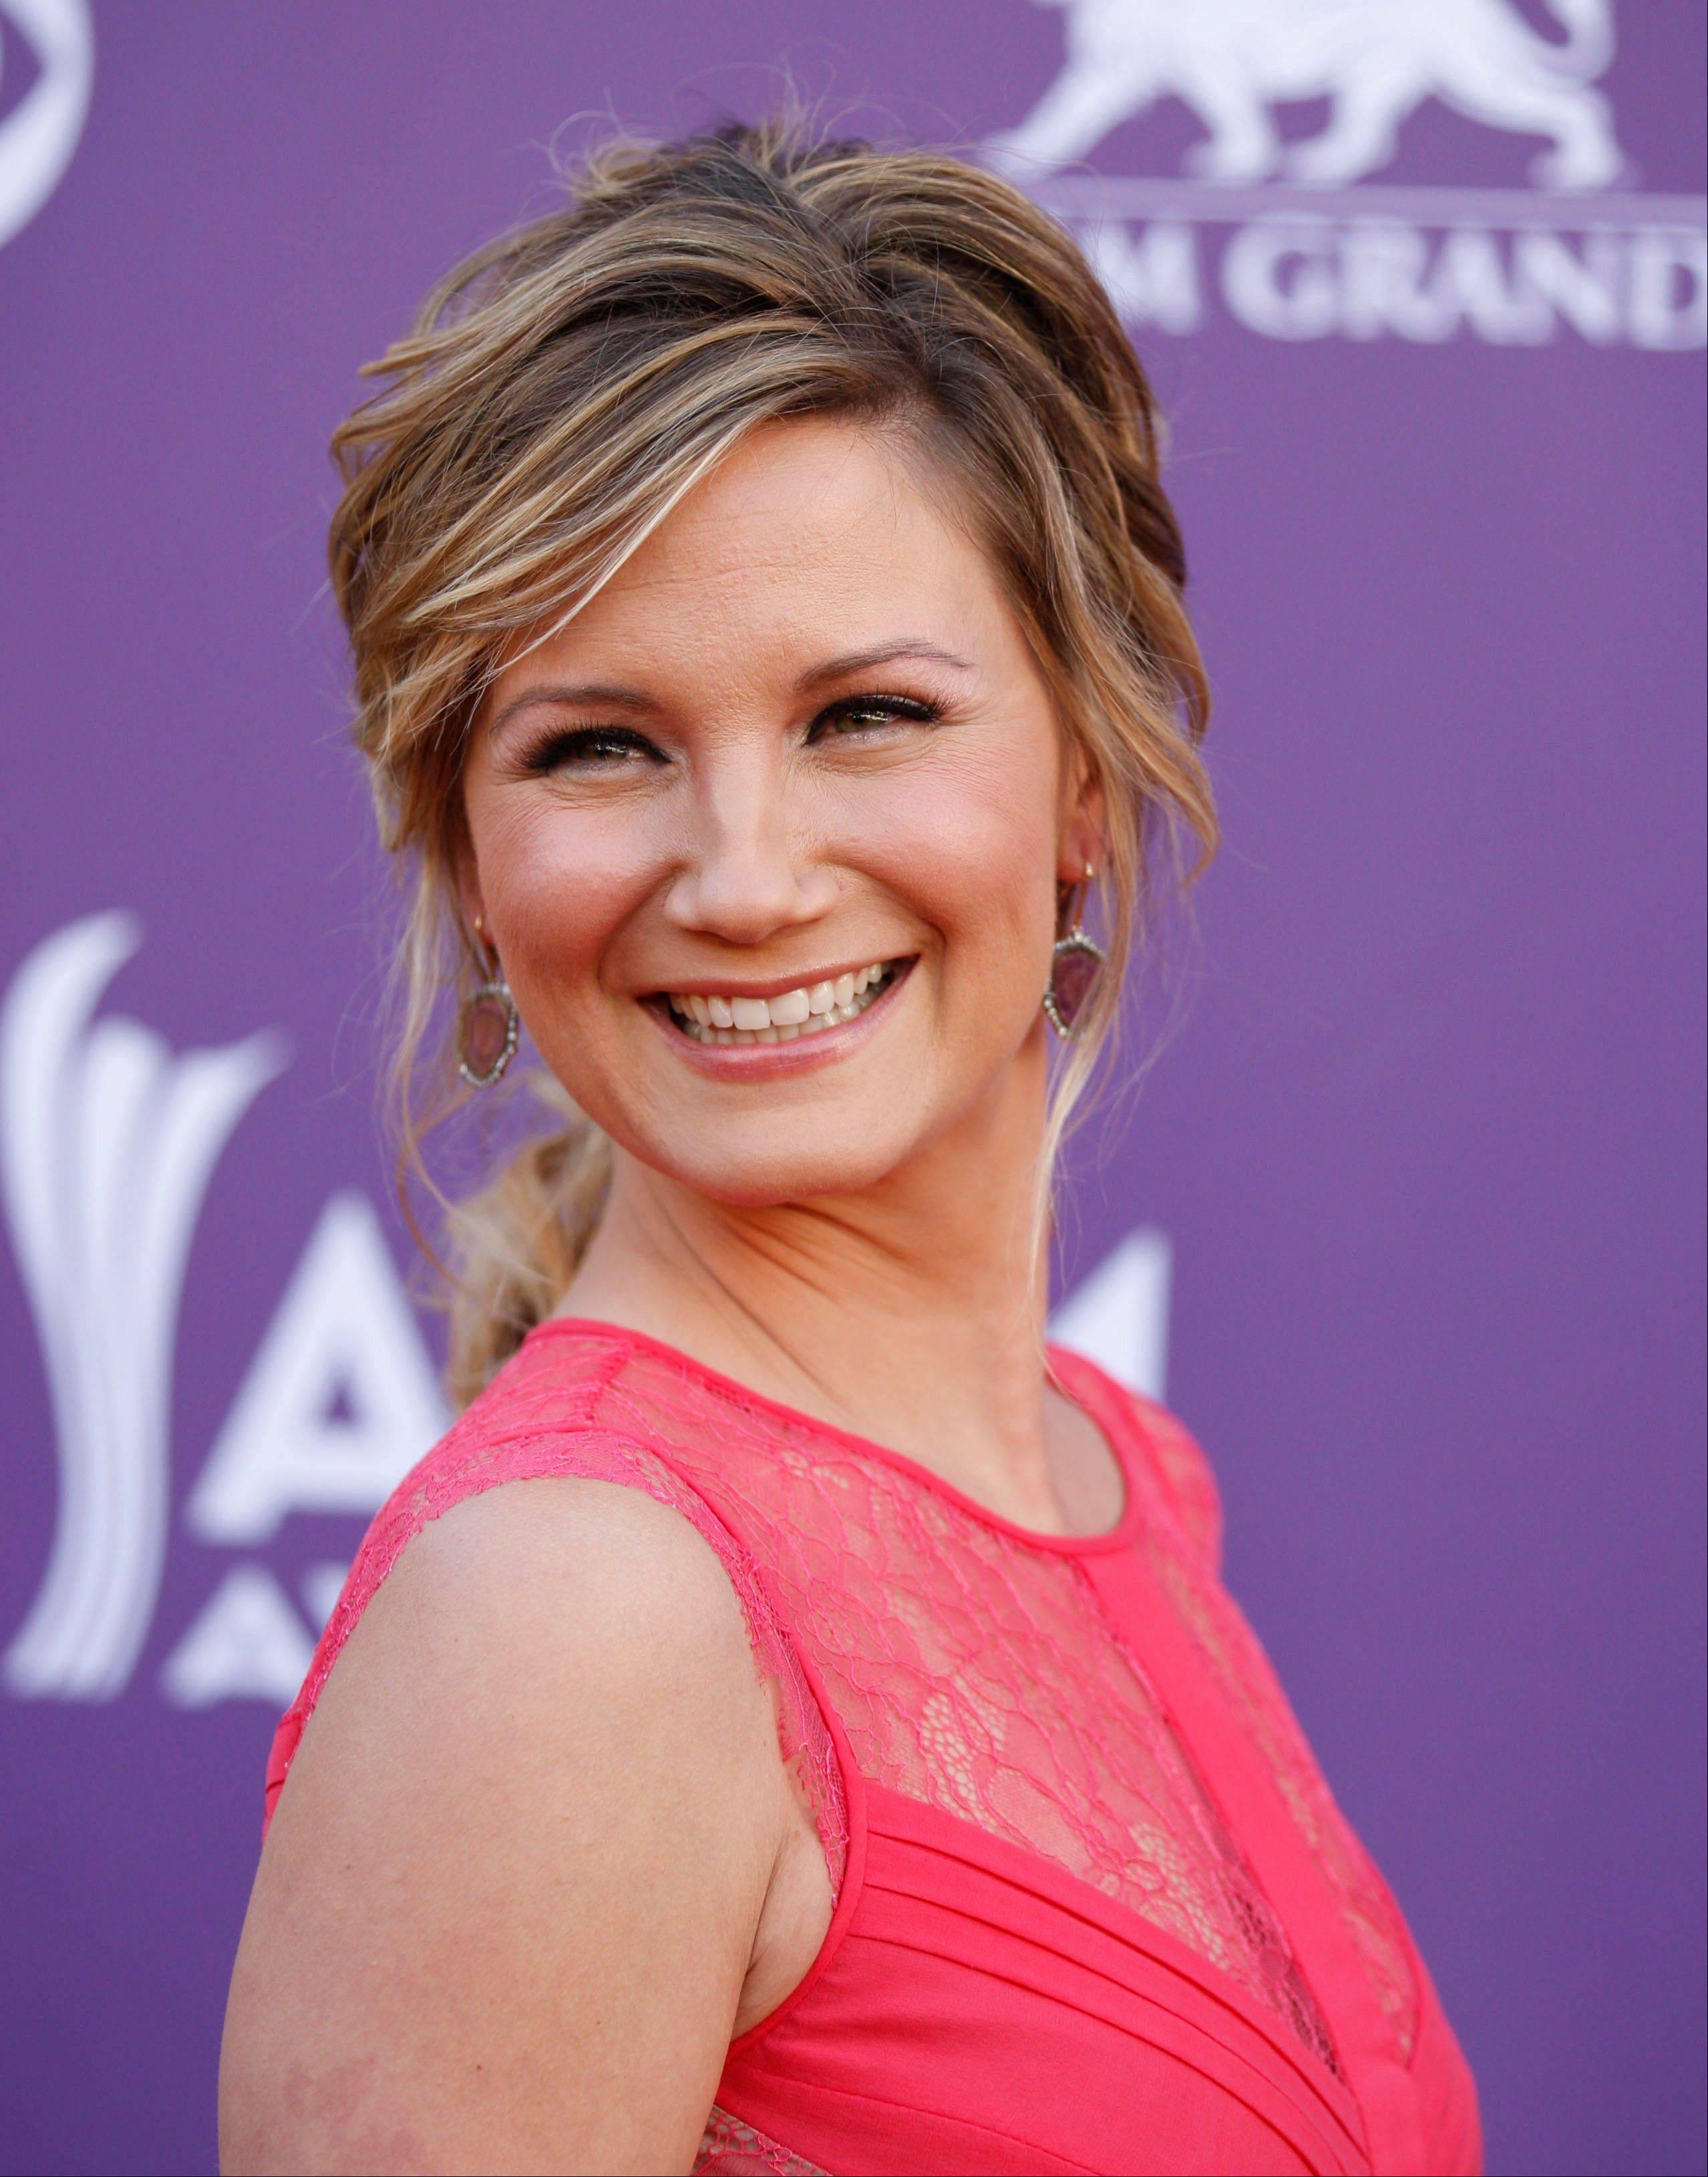 Jennifer Nettles, of musical group Sugarland, shows off her fashionable side ahead of the ceremony.